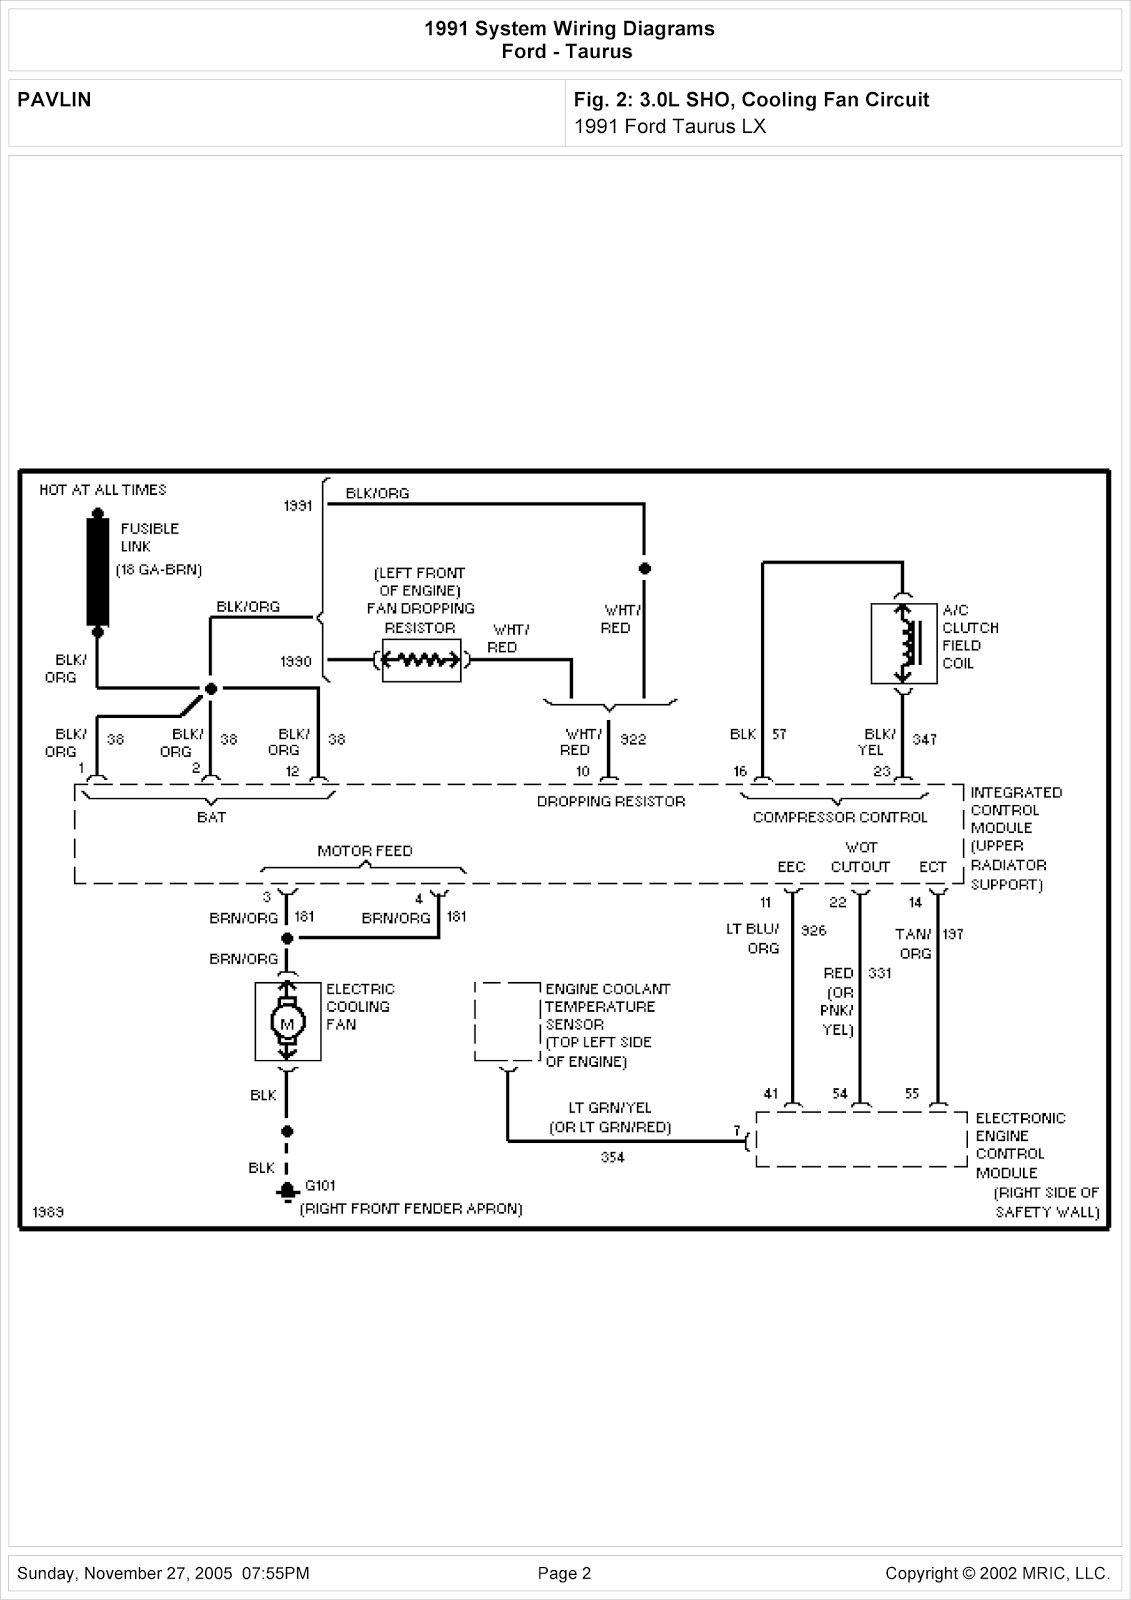 2008 ford escape cooling fan wiring diagram 2008 ford escape factory stereo wiring diagram